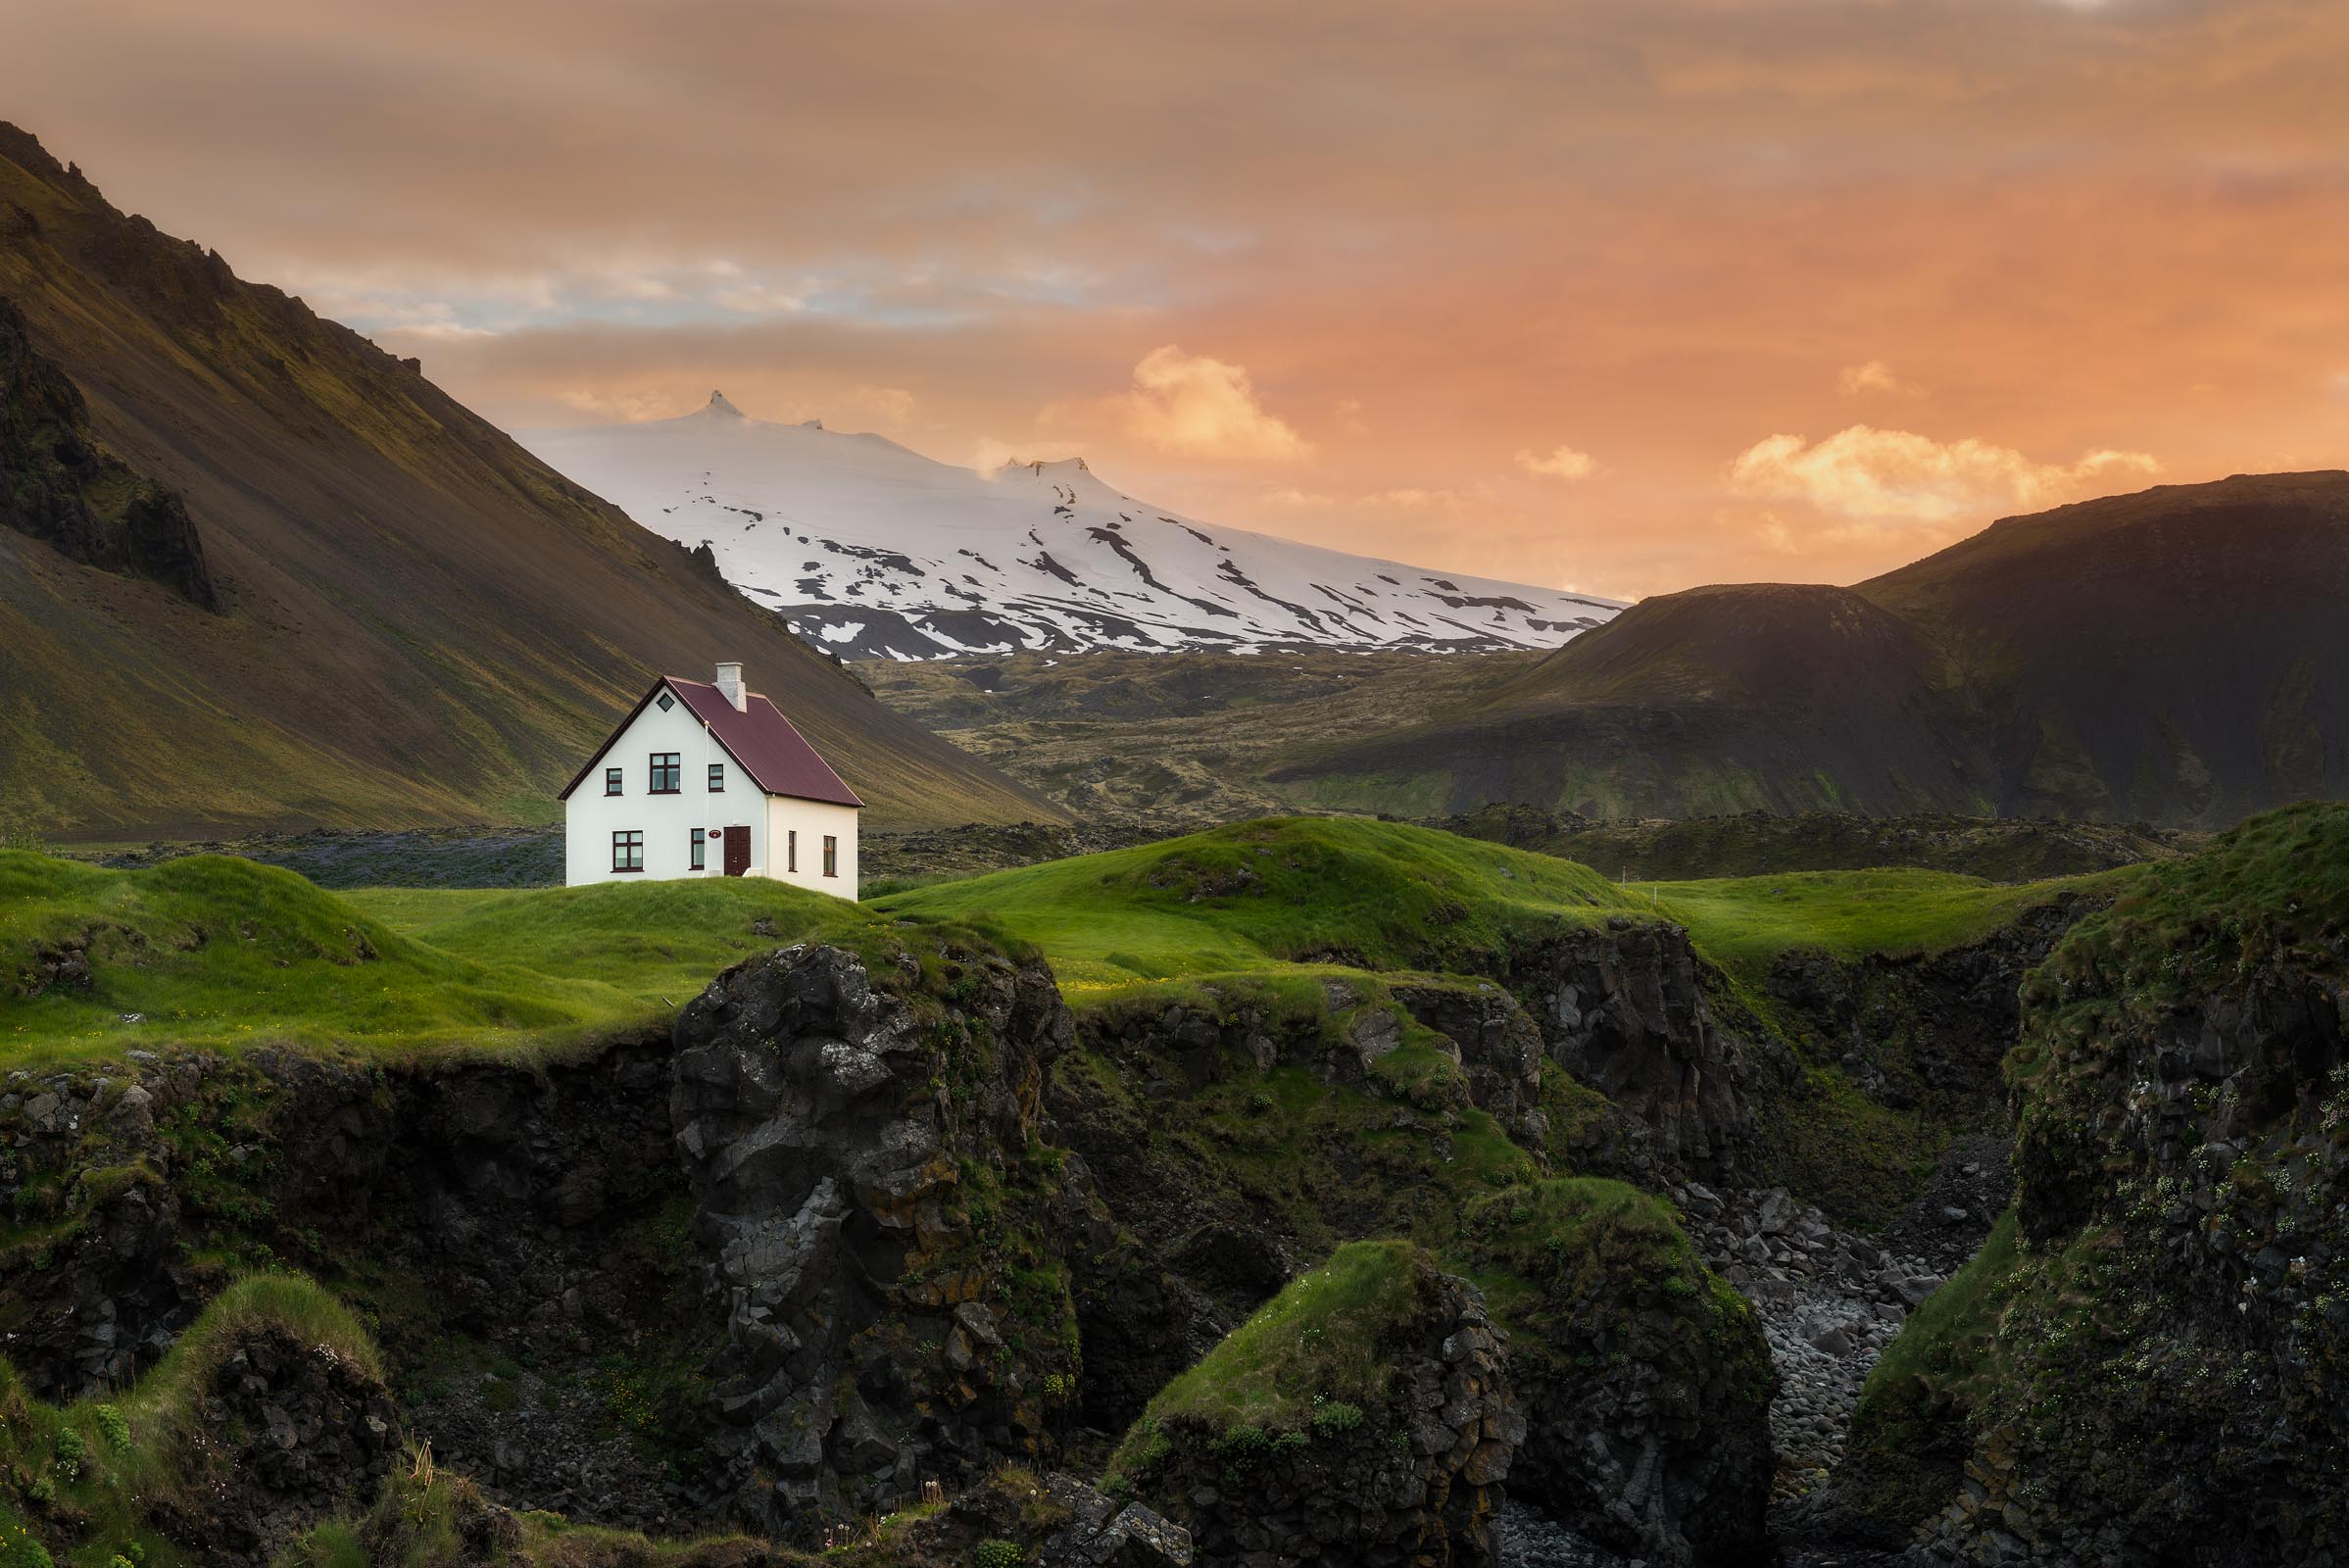 Photograph of Lone House in Arnarstapi, Iceland by Brent Goldman Photography